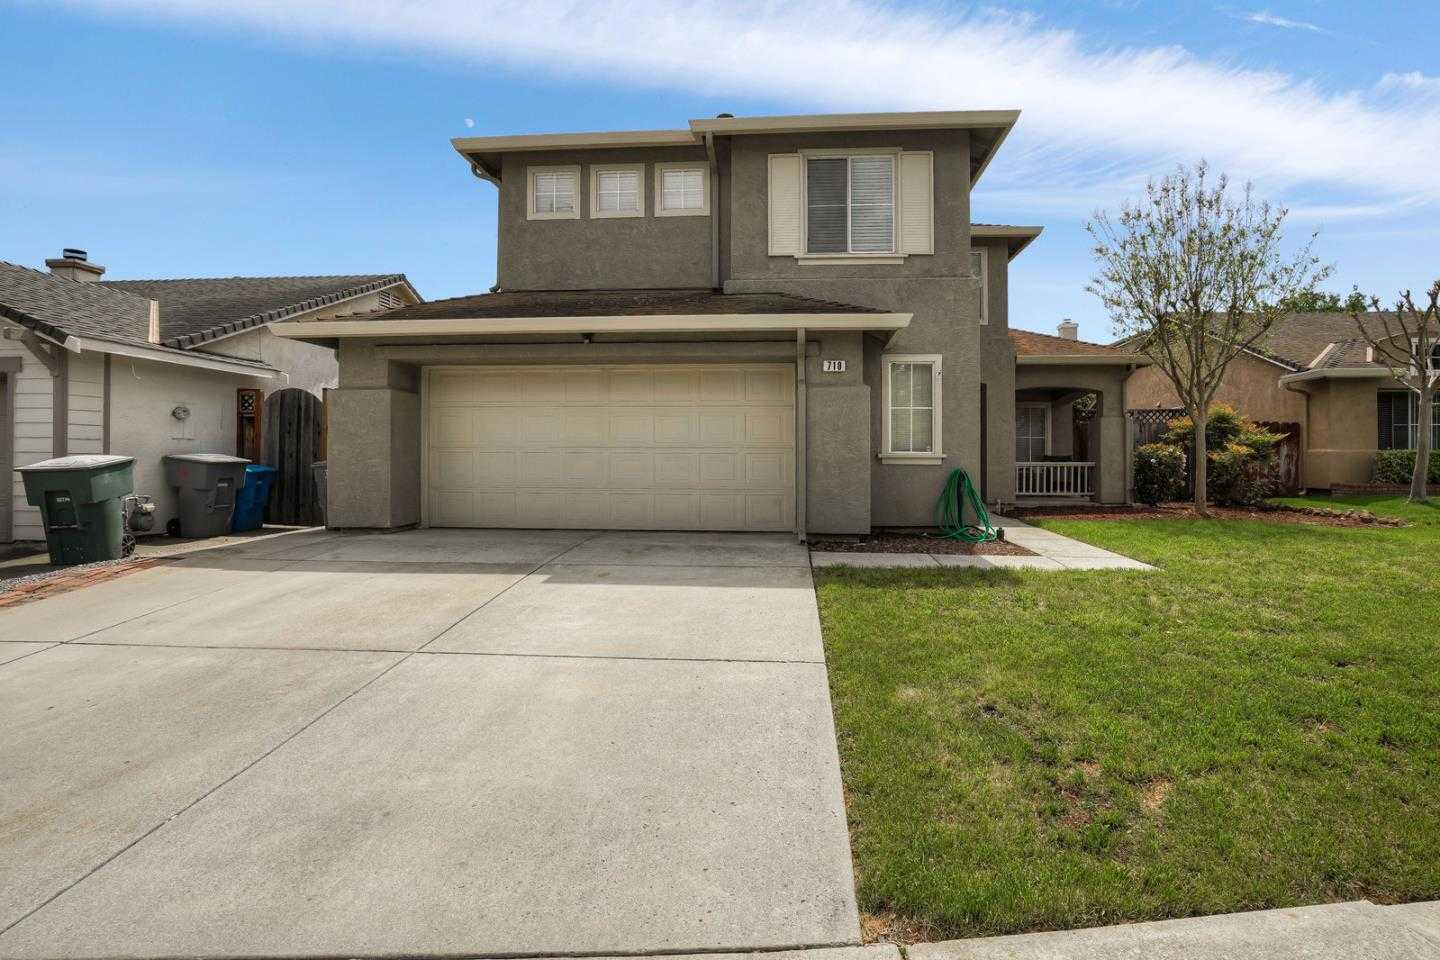 $715,000 - 4Br/3Ba -  for Sale in Gilroy